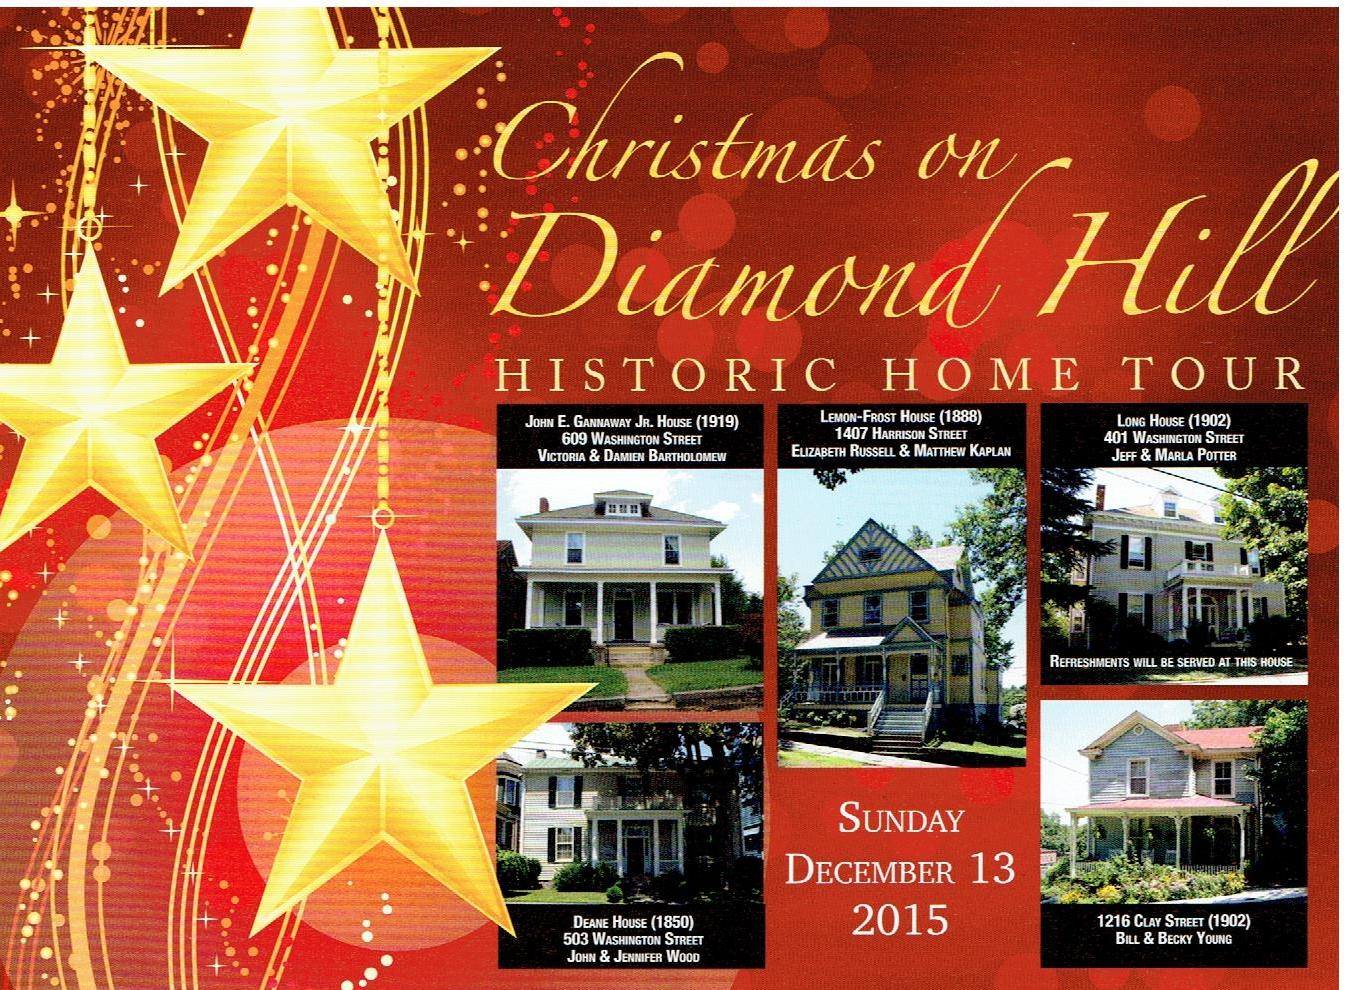 Christmas-on-Diamond-Hill-Historic-Home-Tour.jpg